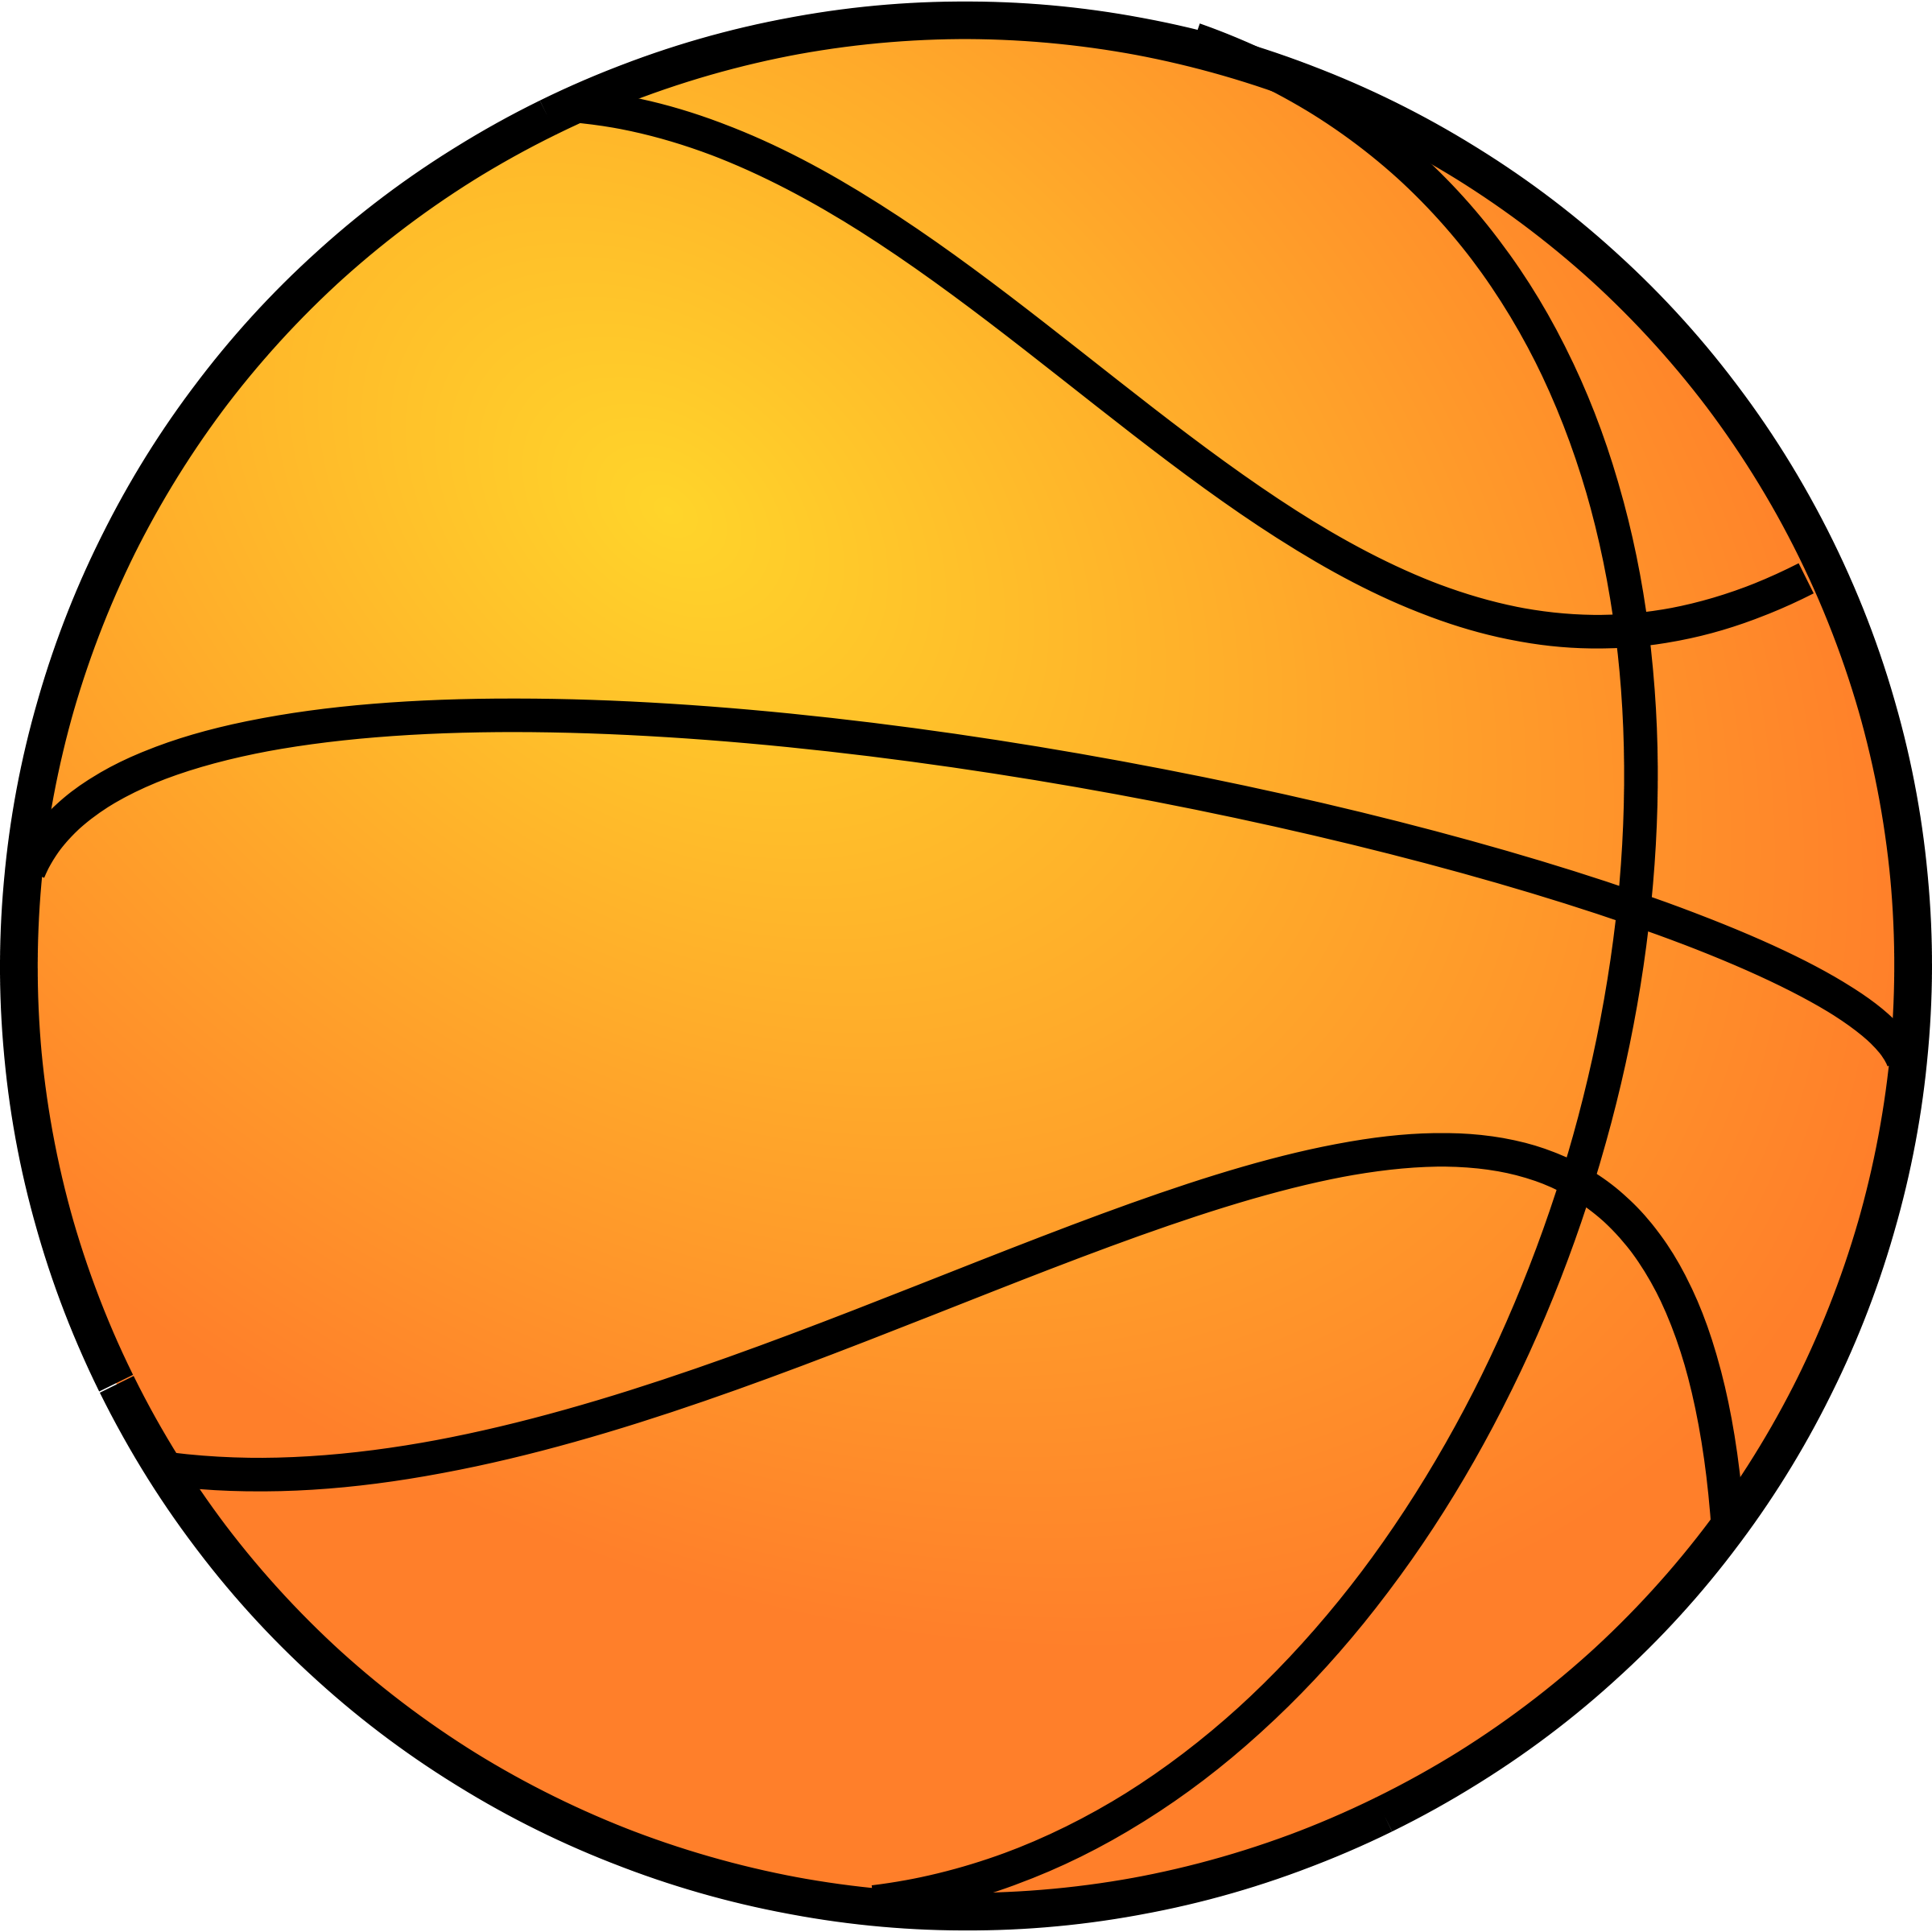 Goal clipart basket ball. Basketball panda free images